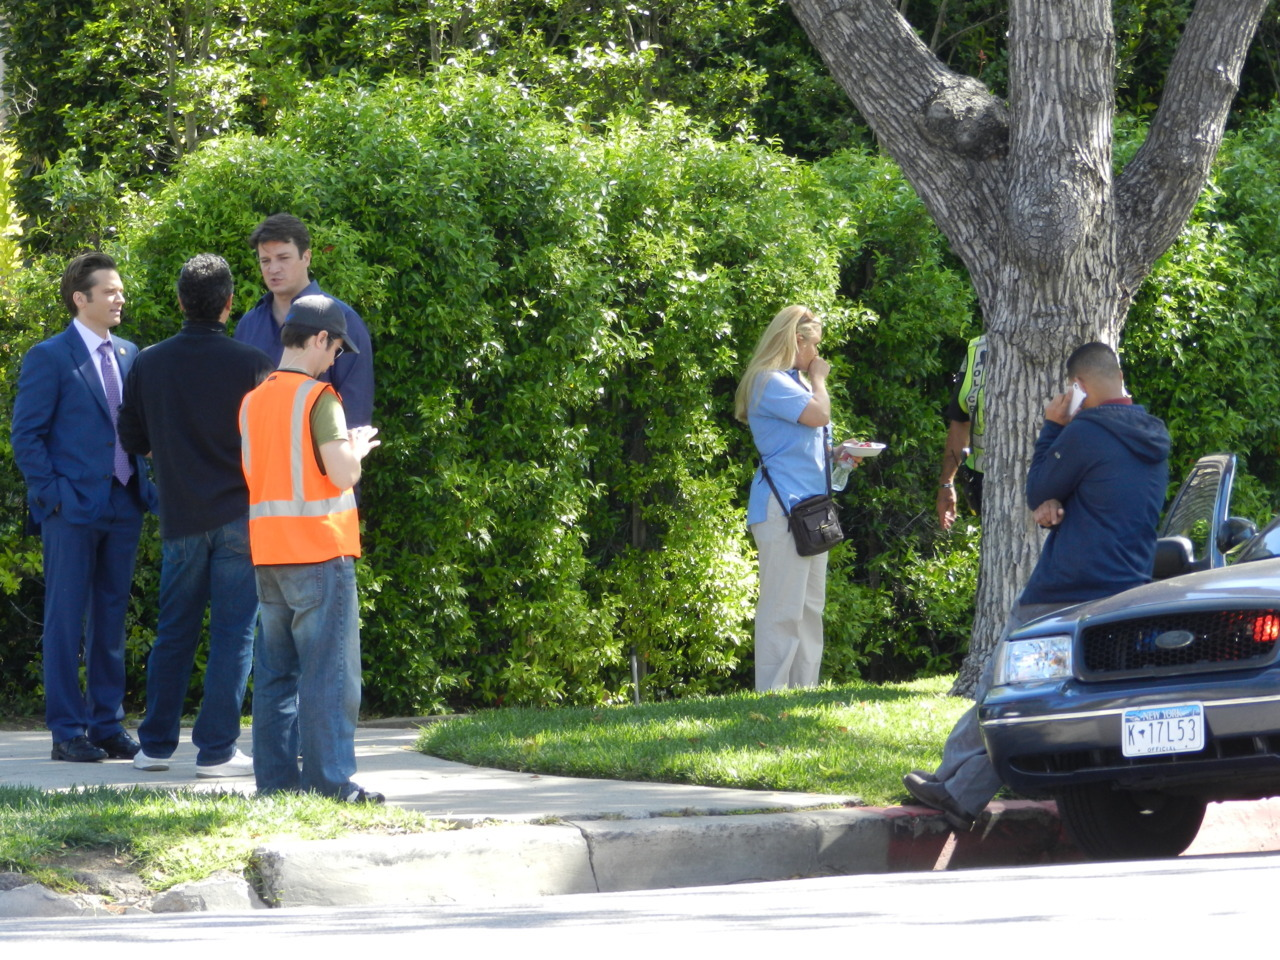 April 16, 2012. West LA, Season 4 - Final Day